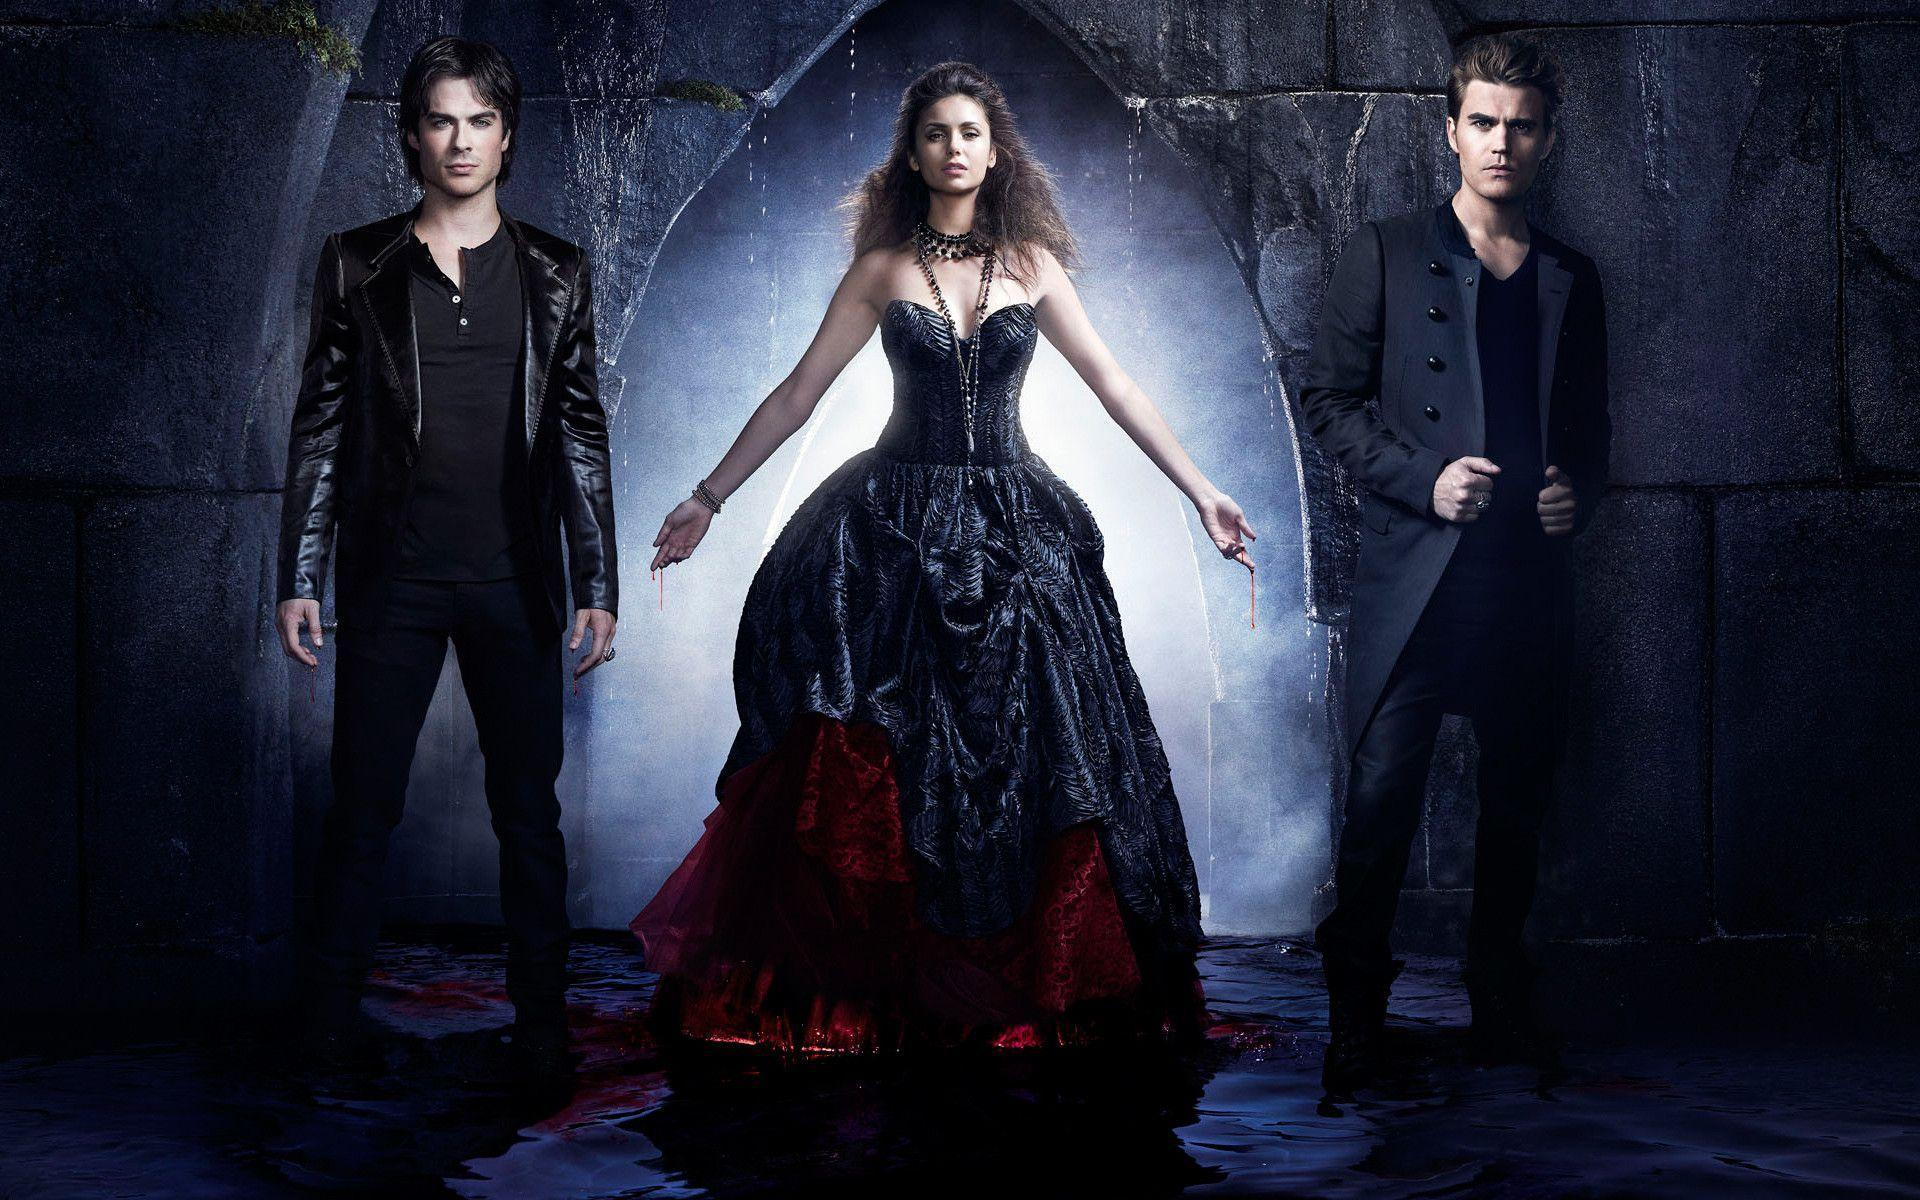 Vampire Diaries Wallpapers - Wallpaper Cave